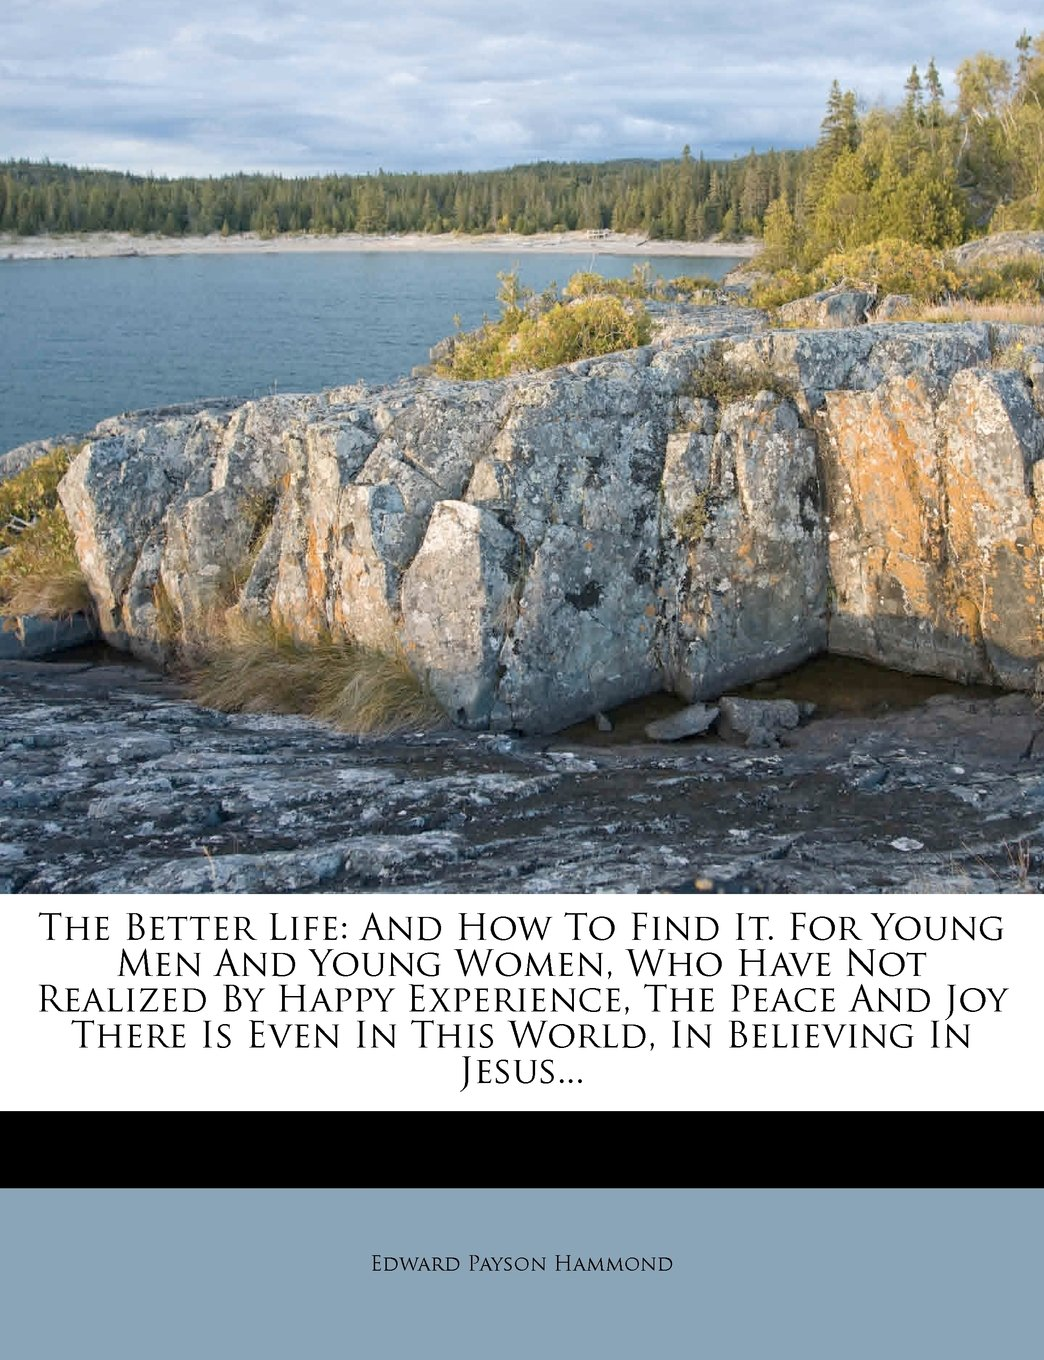 Download The Better Life: And How To Find It. For Young Men And Young Women, Who Have Not Realized By Happy Experience, The Peace And Joy There Is Even In This World, In Believing In Jesus... pdf